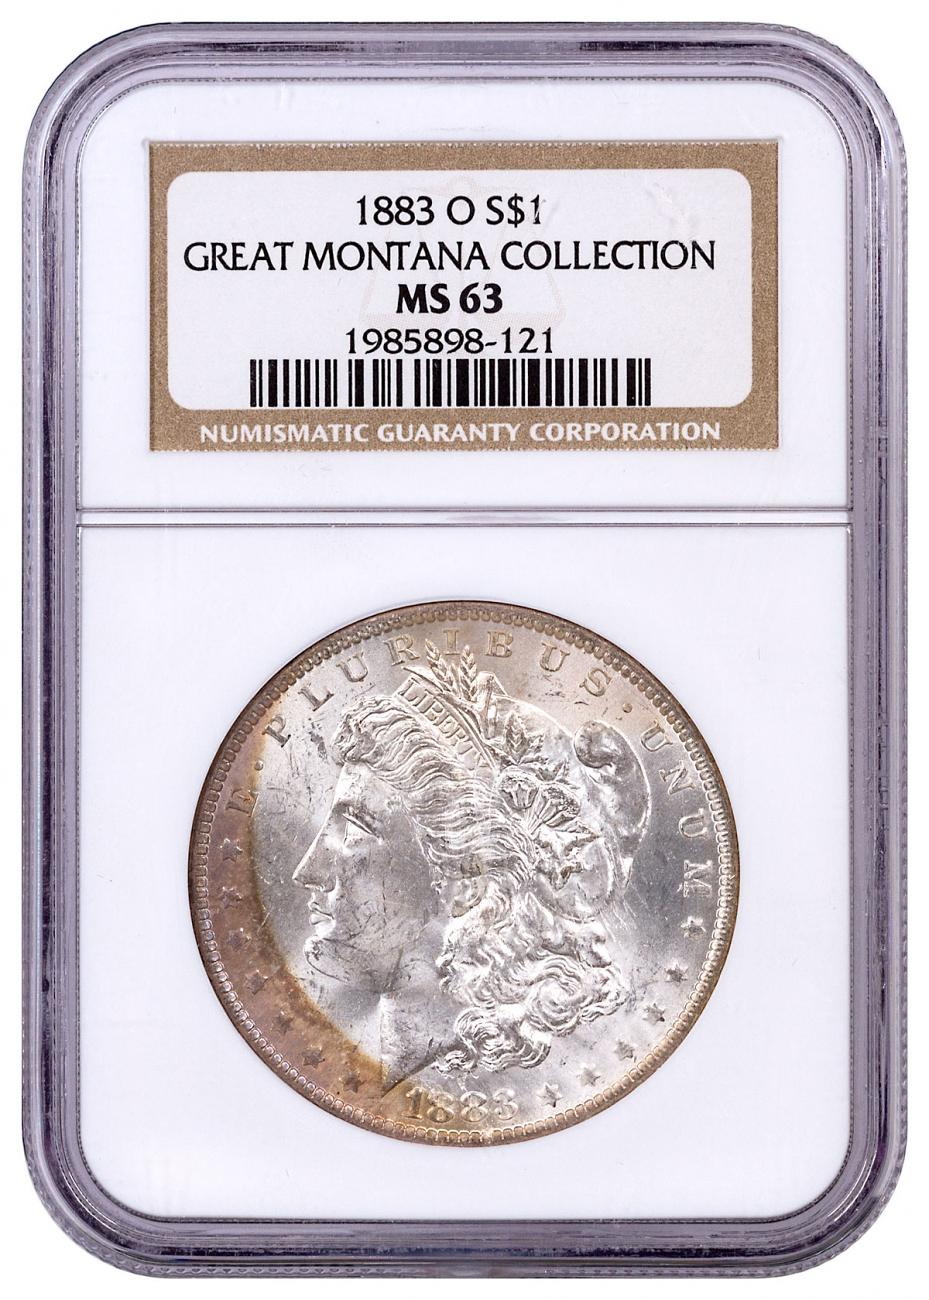 1883-O Morgan Silver Dollar From the Great Montana Collection NGC MS63 Toned CPCR 121